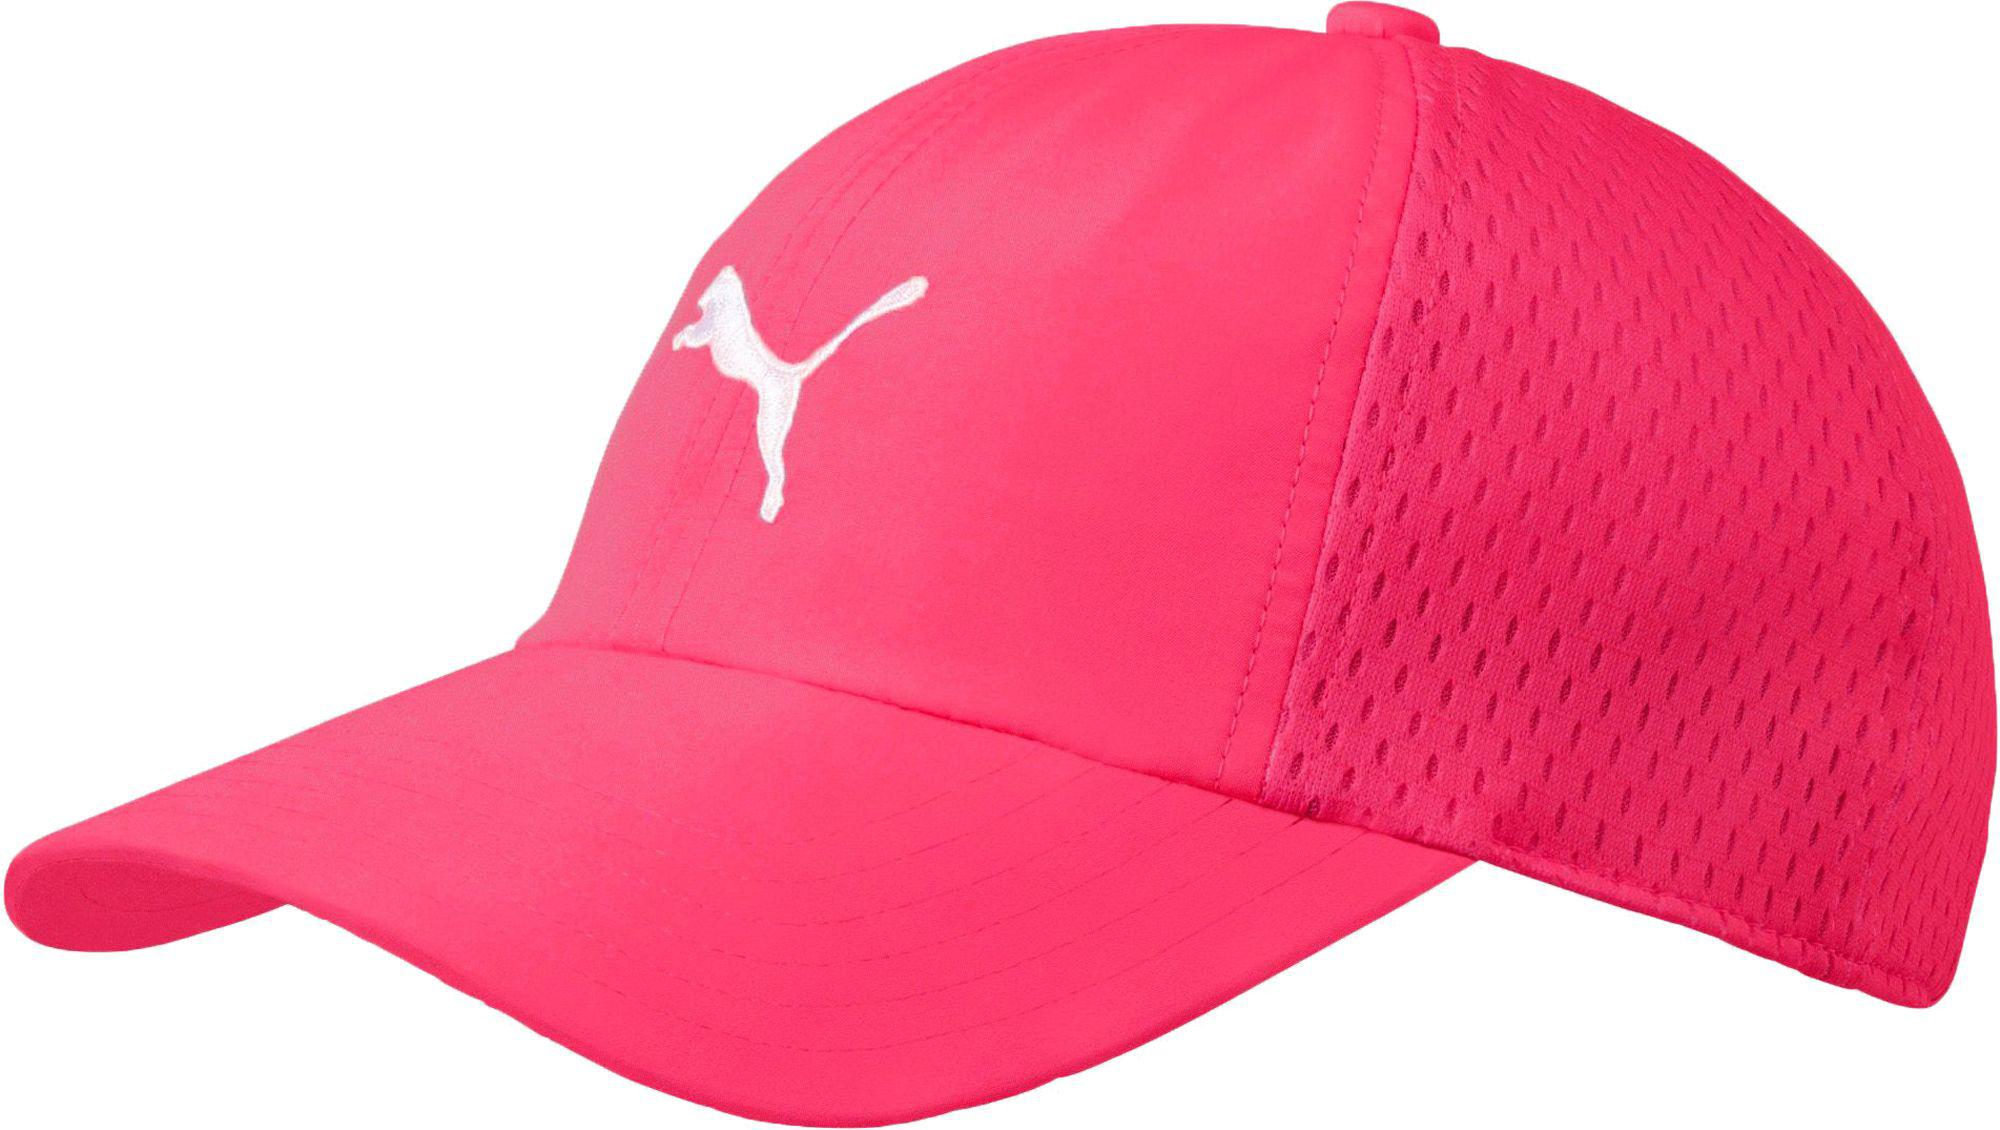 Lyst - PUMA Youth Air Mesh Golf Hat in Pink for Men 61cae7fc057